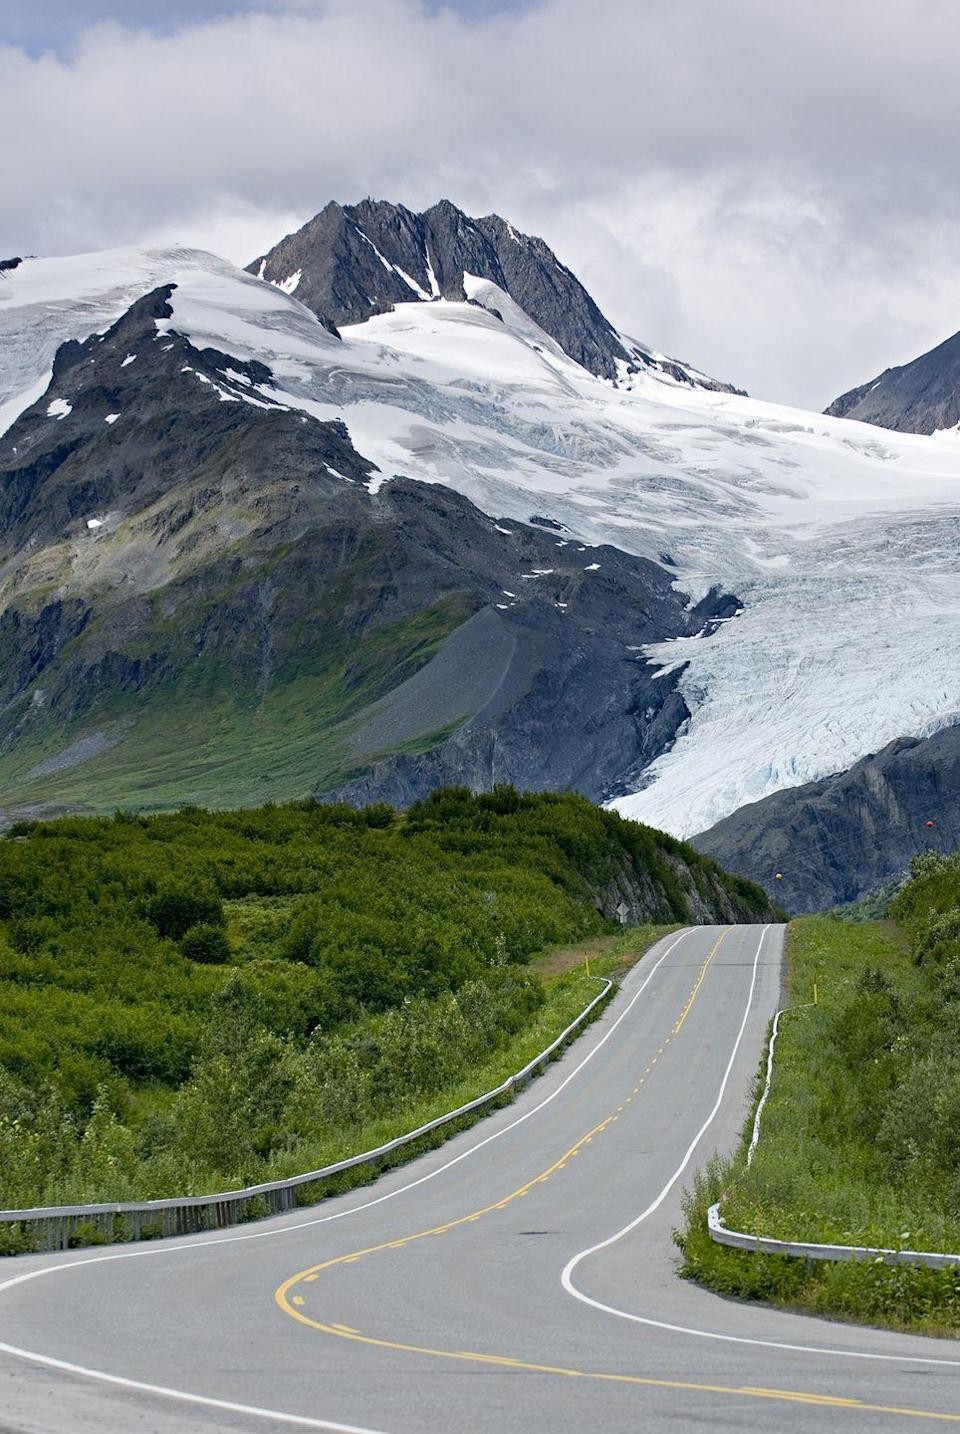 """<p><strong>The Drive:</strong> <a href=""""https://www.tripadvisor.com/Attraction_Review-g28923-d276949-Reviews-Richardson_Highway-Alaska.html"""" rel=""""nofollow noopener"""" target=""""_blank"""" data-ylk=""""slk:Richardson Highway"""" class=""""link rapid-noclick-resp"""">Richardson Highway</a></p><p><strong>The Scene:</strong> You may want to break this seven-hour, 360-mile journey up over the course of a couple days to ensure you can see everything along the way. On route from <a href=""""https://www.tripadvisor.com/Tourism-g60826-Fairbanks_Alaska-Vacations.html"""" rel=""""nofollow noopener"""" target=""""_blank"""" data-ylk=""""slk:Fairbanks"""" class=""""link rapid-noclick-resp"""">Fairbanks</a> to <a href=""""https://www.tripadvisor.com/Tourism-g31156-Valdez_Alaska-Vacations.html"""" rel=""""nofollow noopener"""" target=""""_blank"""" data-ylk=""""slk:Valdez, Alaska"""" class=""""link rapid-noclick-resp"""">Valdez, Alaska</a> you'll see <a href=""""https://www.tripadvisor.com/Attraction_Review-g31156-d103561-Reviews-Keystone_Canyon-Valdez_Alaska.html"""" rel=""""nofollow noopener"""" target=""""_blank"""" data-ylk=""""slk:Keystone Canyon"""" class=""""link rapid-noclick-resp"""">Keystone Canyon</a>, Worthing Glacier, Gulkana Glacier, the <a href=""""https://www.tripadvisor.com/Tourism-g143056-Wrangell_St_Elias_National_Park_and_Preserve_Alaska-Vacations.html"""" rel=""""nofollow noopener"""" target=""""_blank"""" data-ylk=""""slk:Wrangell-St. Elias National Park"""" class=""""link rapid-noclick-resp"""">Wrangell-St. Elias National Park</a>, and more.</p><p><strong>The Pit-Stop:</strong> Be sure to stop at <a href=""""https://www.tripadvisor.com/Tourism-g31079-North_Pole_Alaska-Vacations.html"""" rel=""""nofollow noopener"""" target=""""_blank"""" data-ylk=""""slk:North Pole, Alaska"""" class=""""link rapid-noclick-resp"""">North Pole, Alaska</a> to see the """"Santa Claus House"""" and the Antler Academy.</p>"""